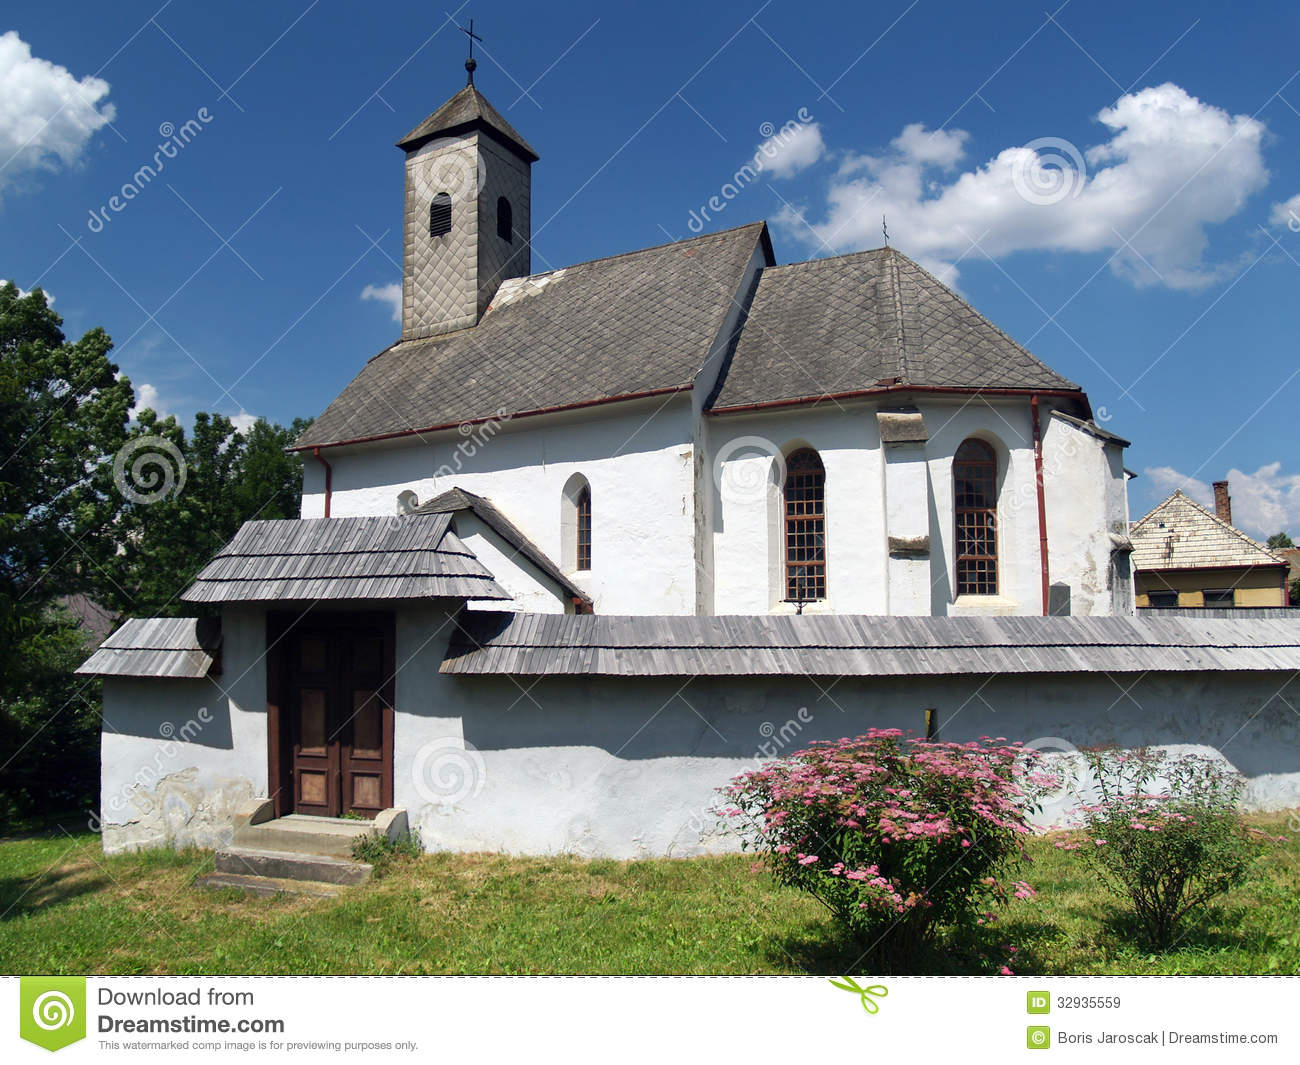 Church of the Virgin Mary of the Seven Sorrows